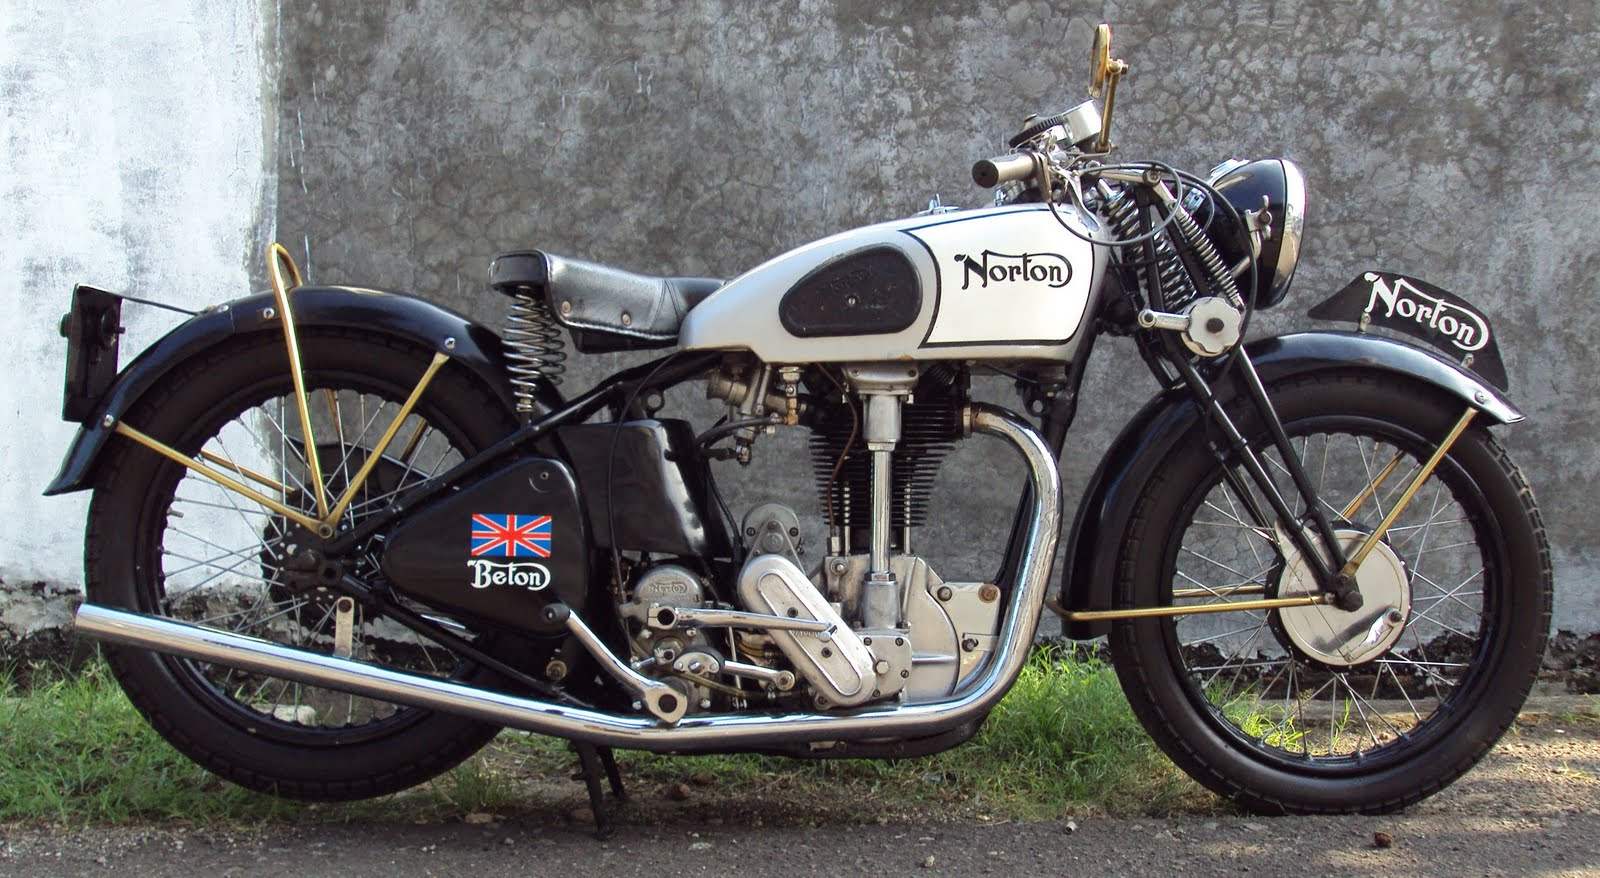 Norton model photo - 4